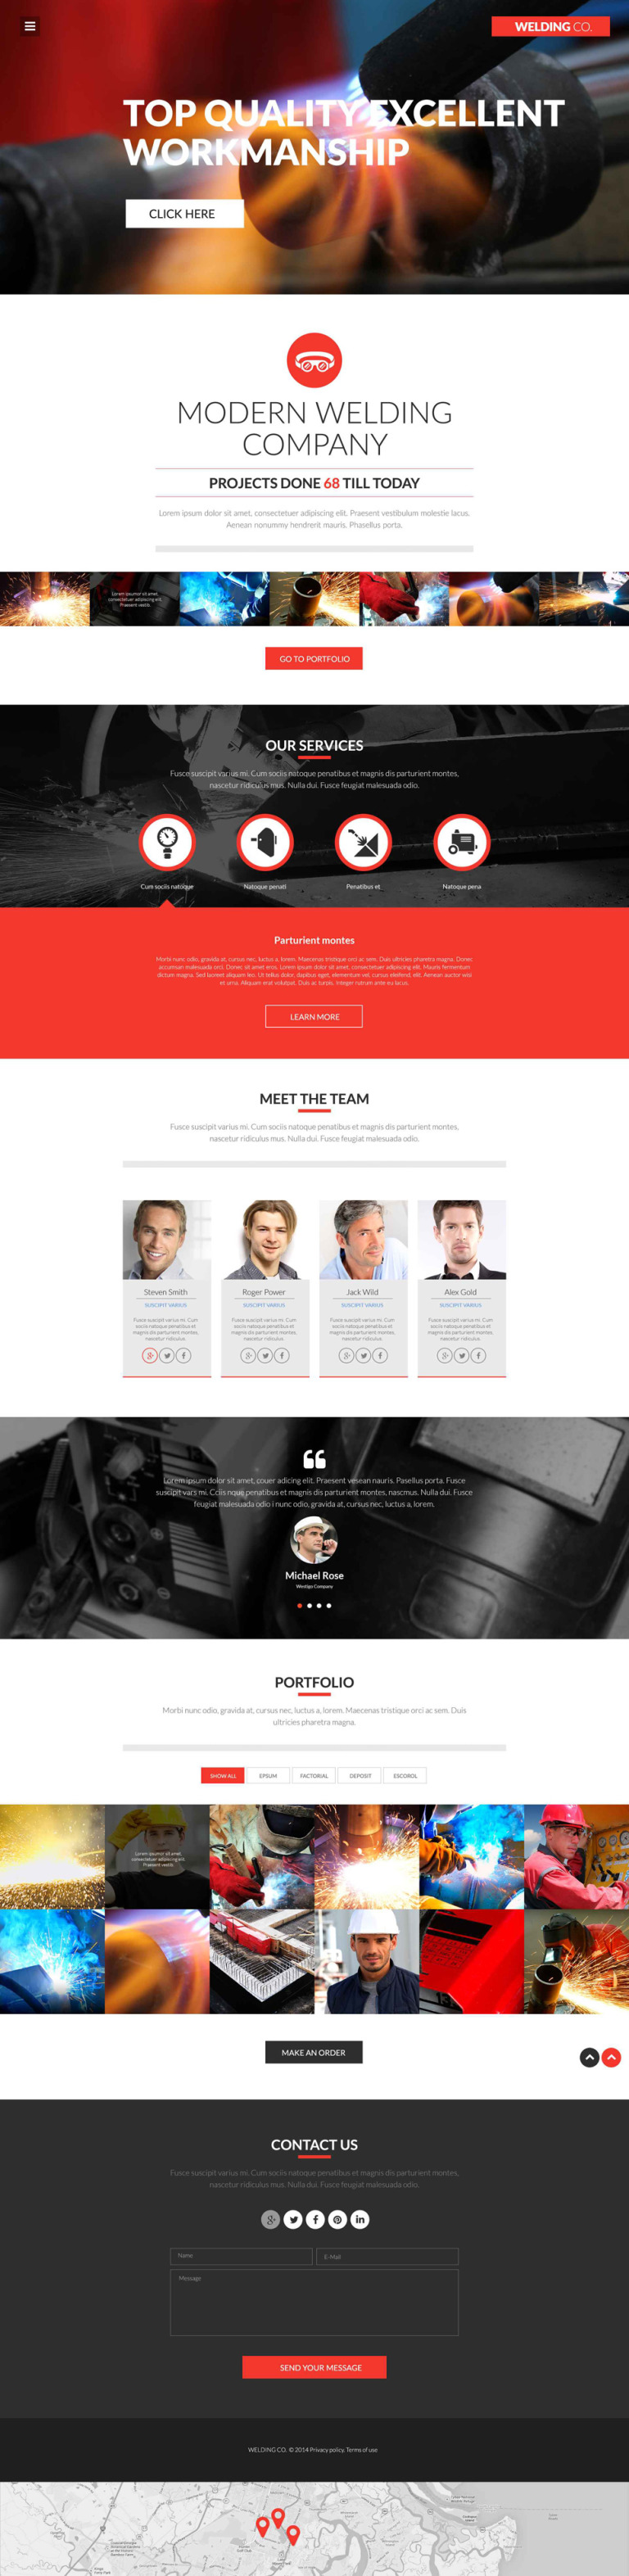 Welding Corp Website Template New Screenshots BIG